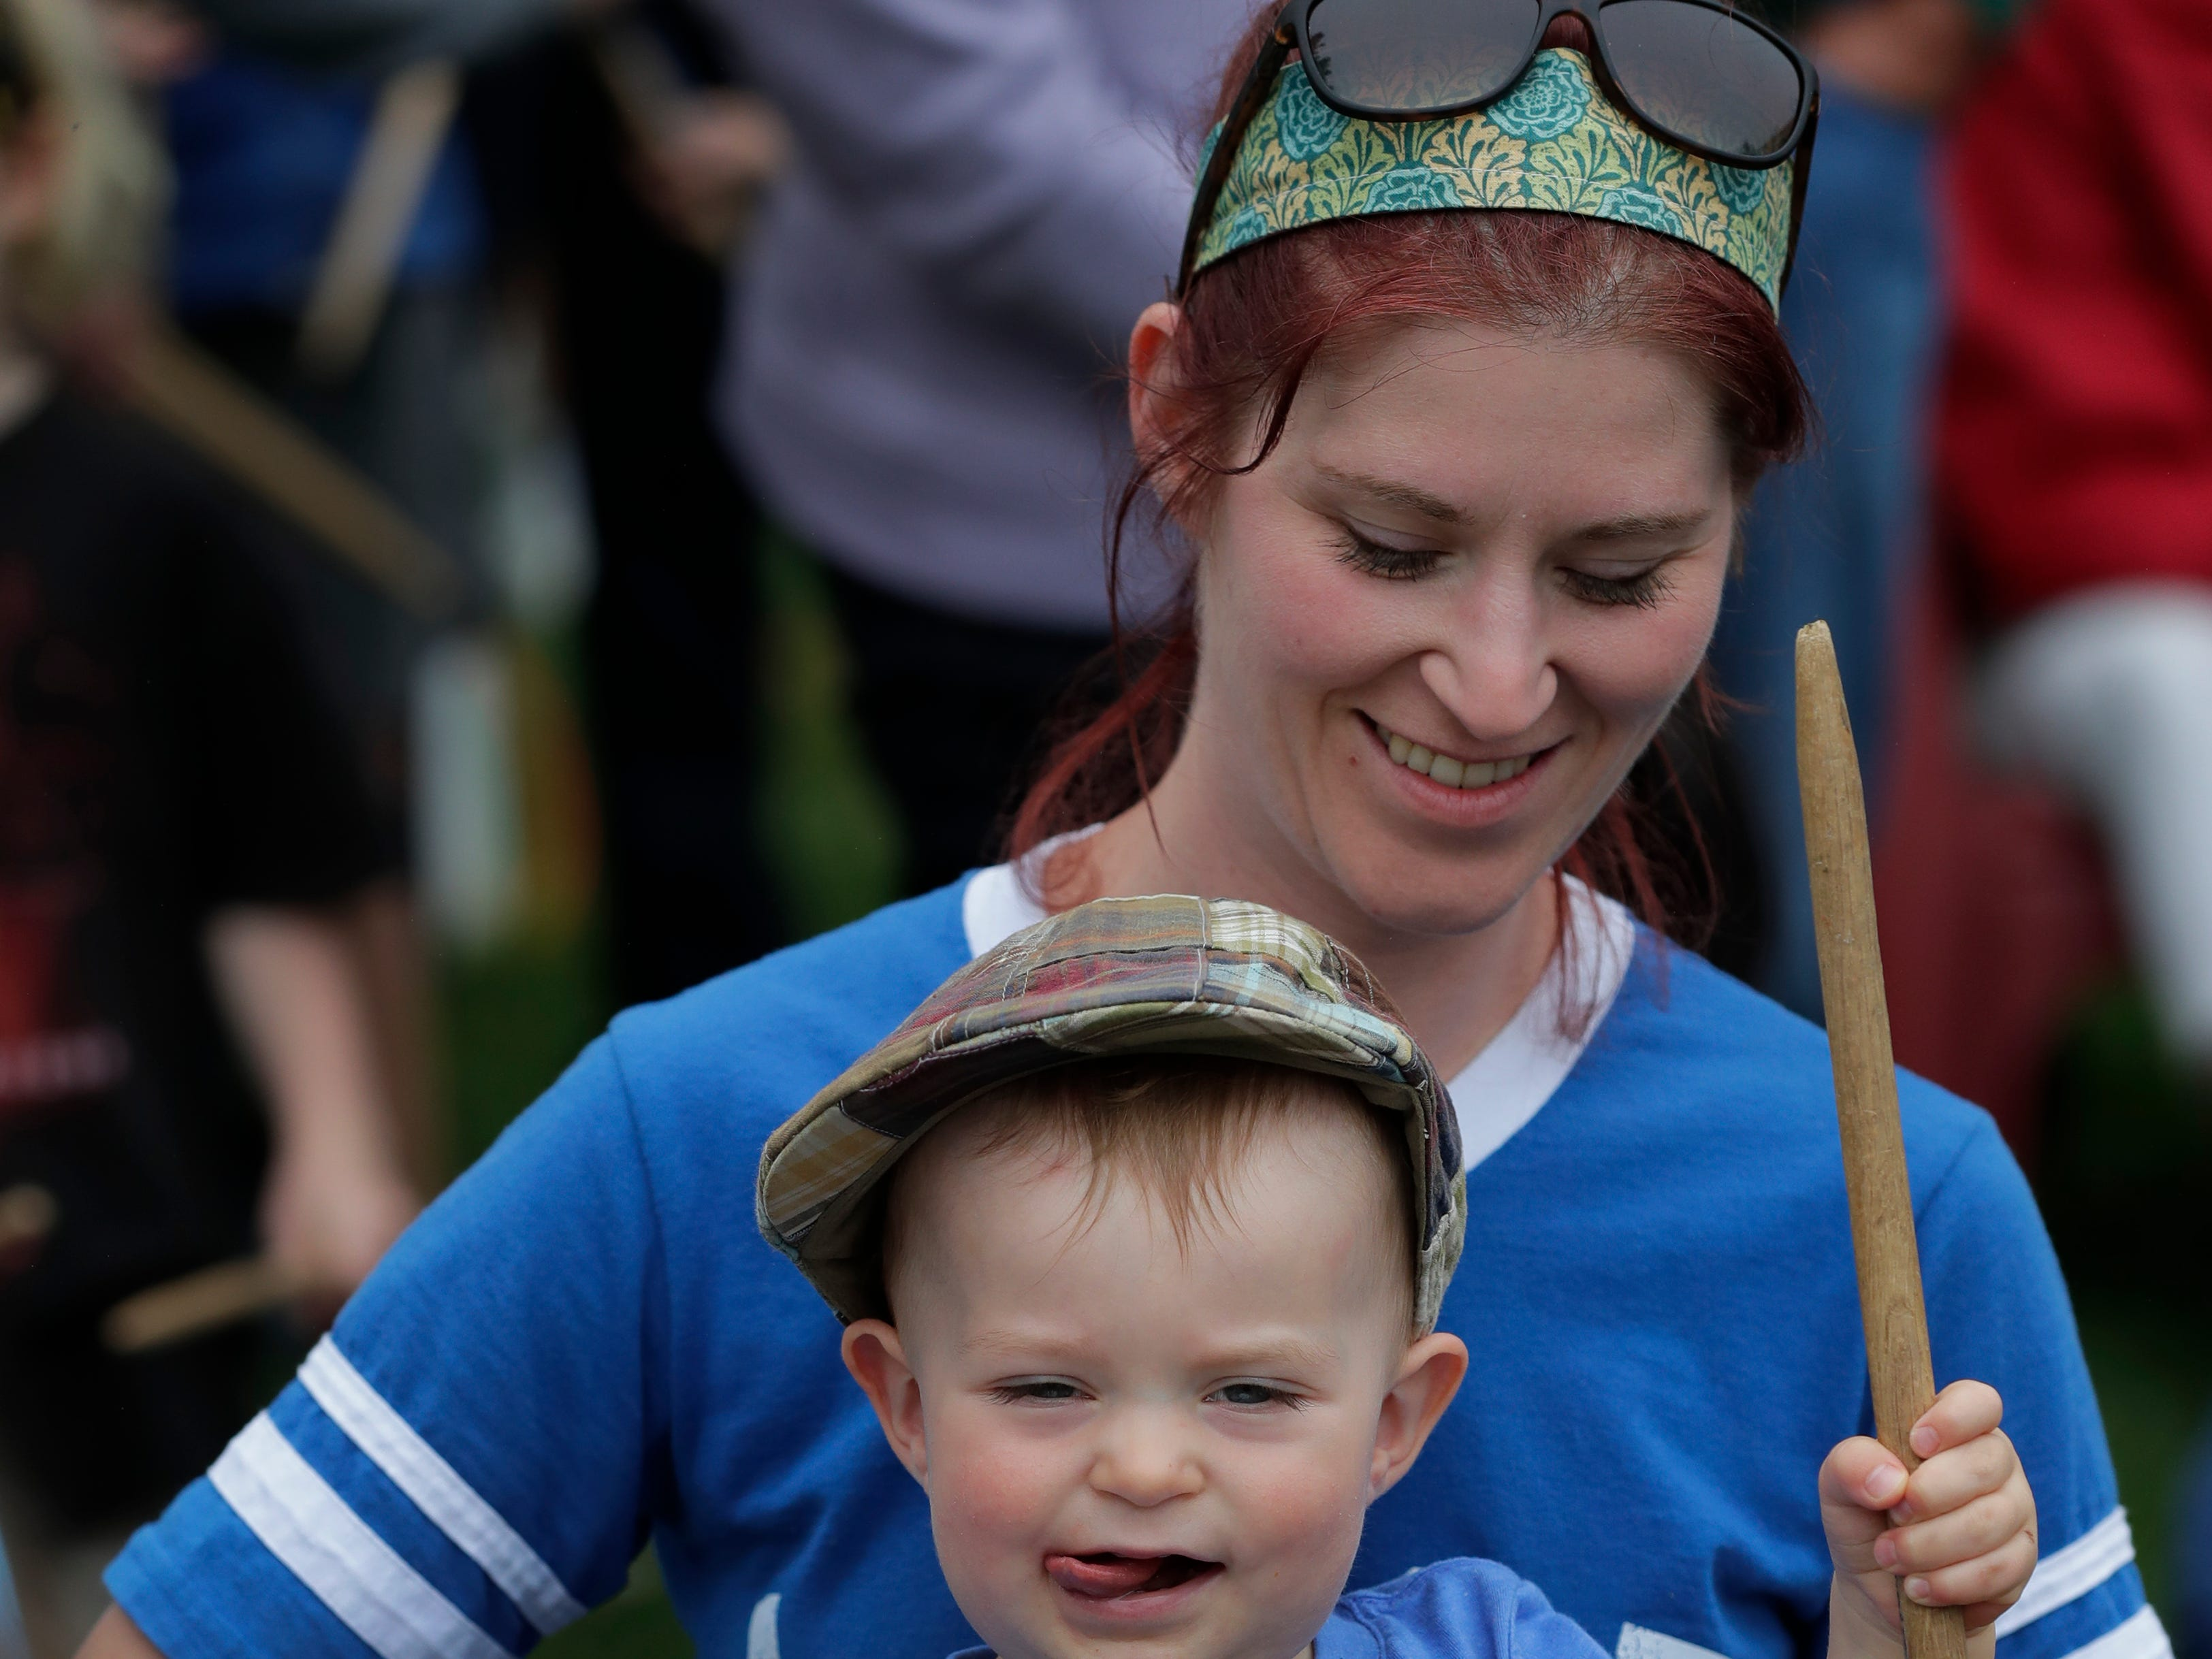 April Lauer-McNamara of Appleton and her son Beckitt McNamara participate in a Brazilian Samba Drumming event at Houdini Plaza during the Mile of Music Thursday, August 2, 2018, in Appleton, Wis.  Dan Powers/USA TODAY NETWORK-Wisconsin